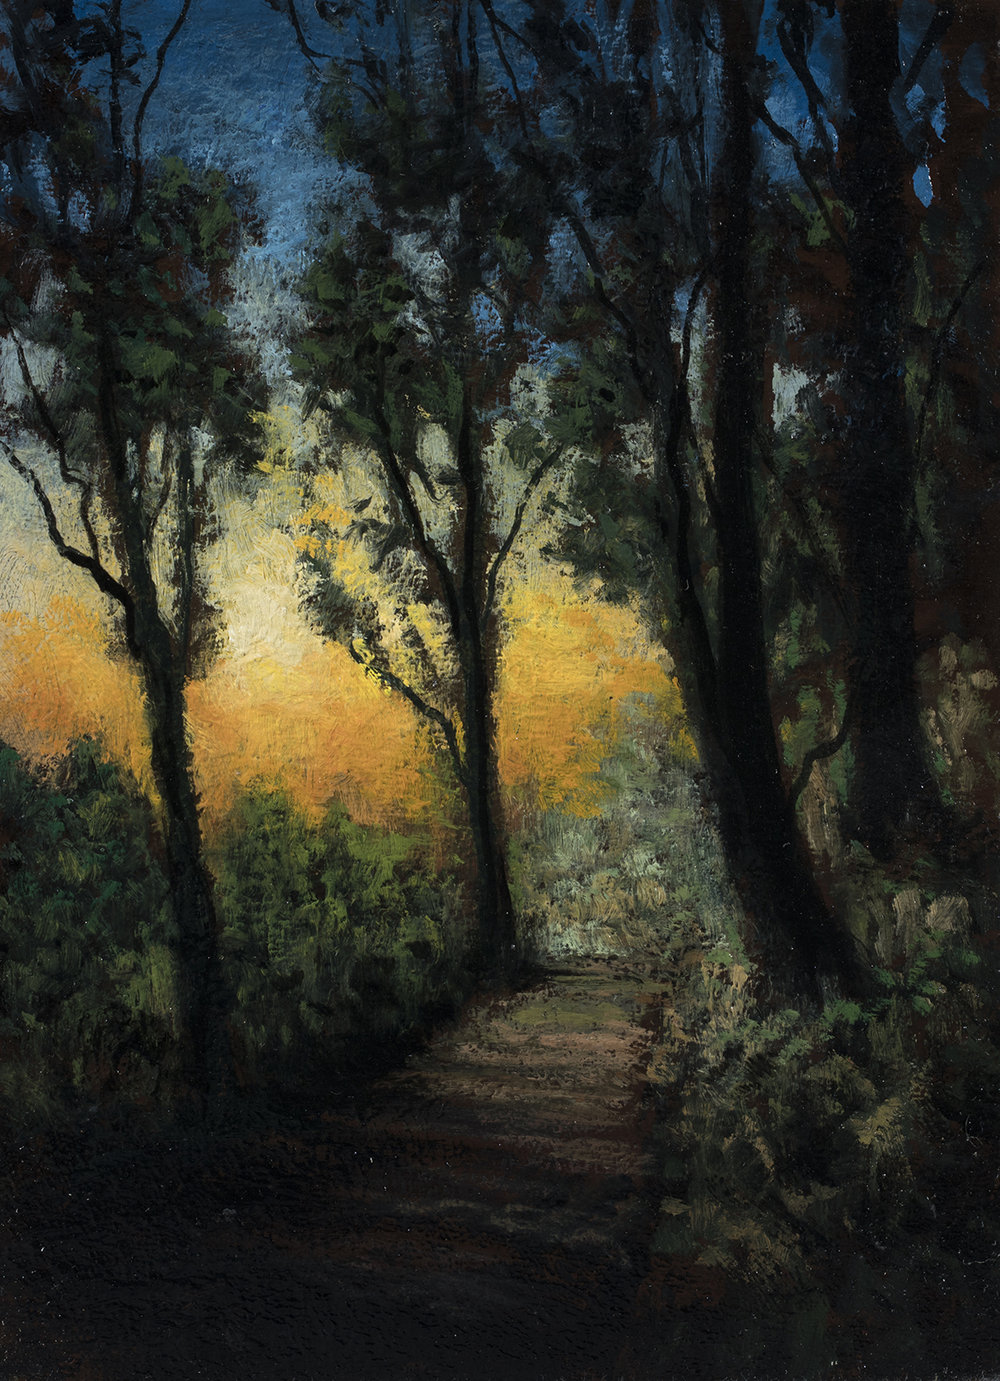 Twilight Trail by M Francis McCarthy - 6x8 Oil on Wood Panel